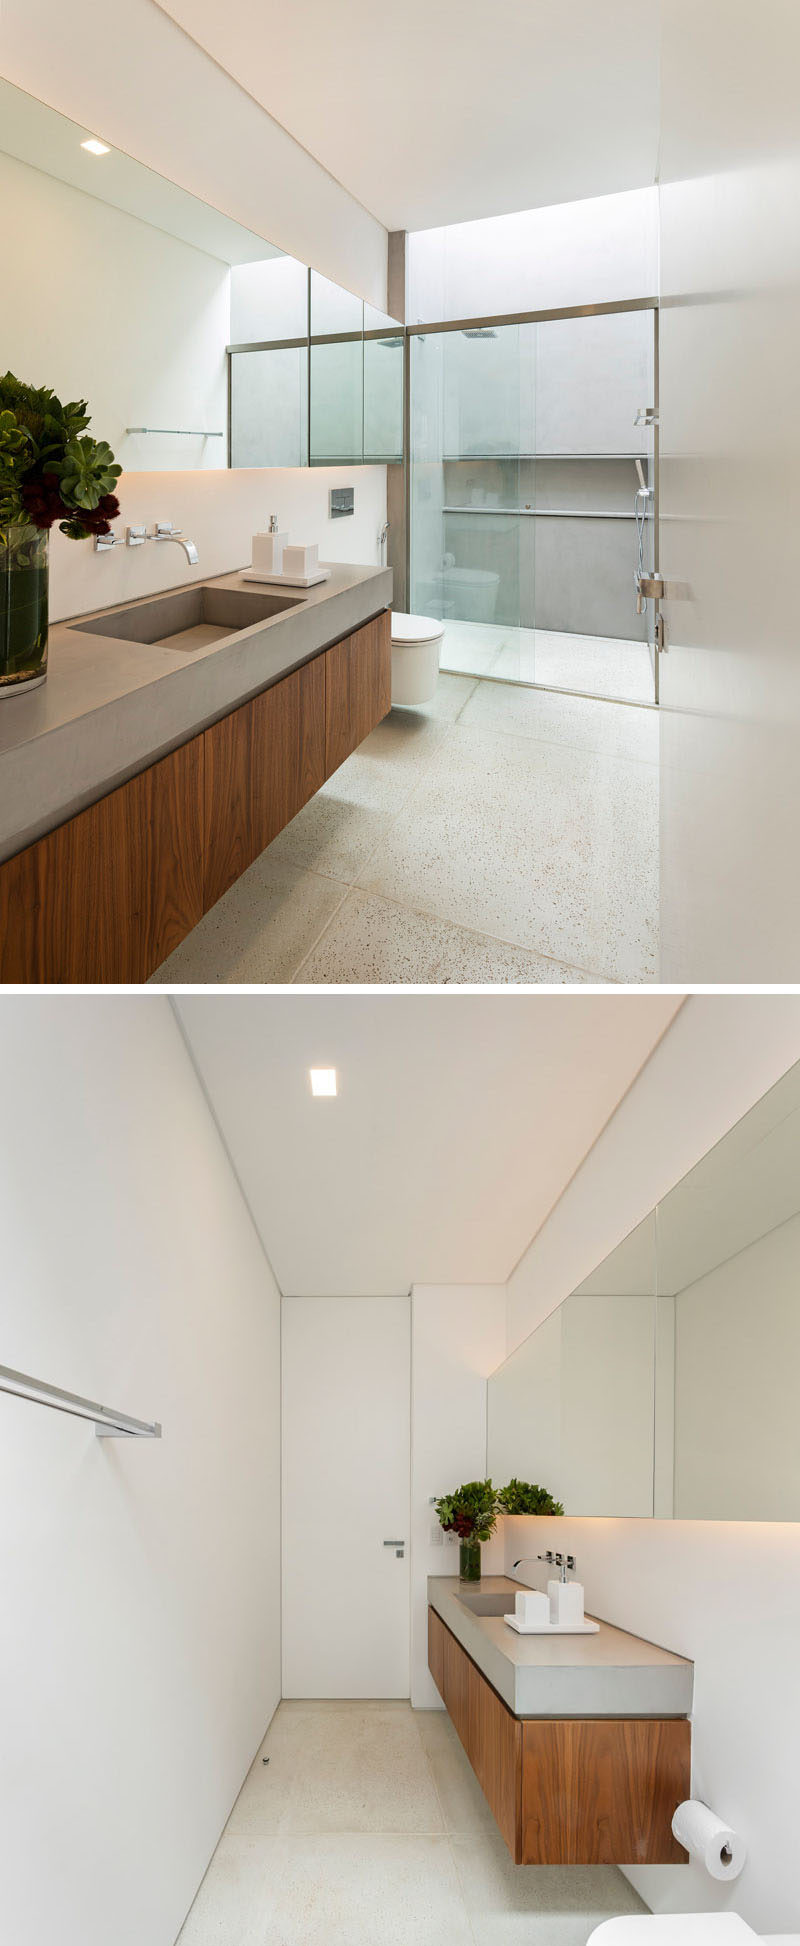 In this ensuite bathroom, there's a vanity with a single sink, and a walk-in shower with lots of light from a skylight.